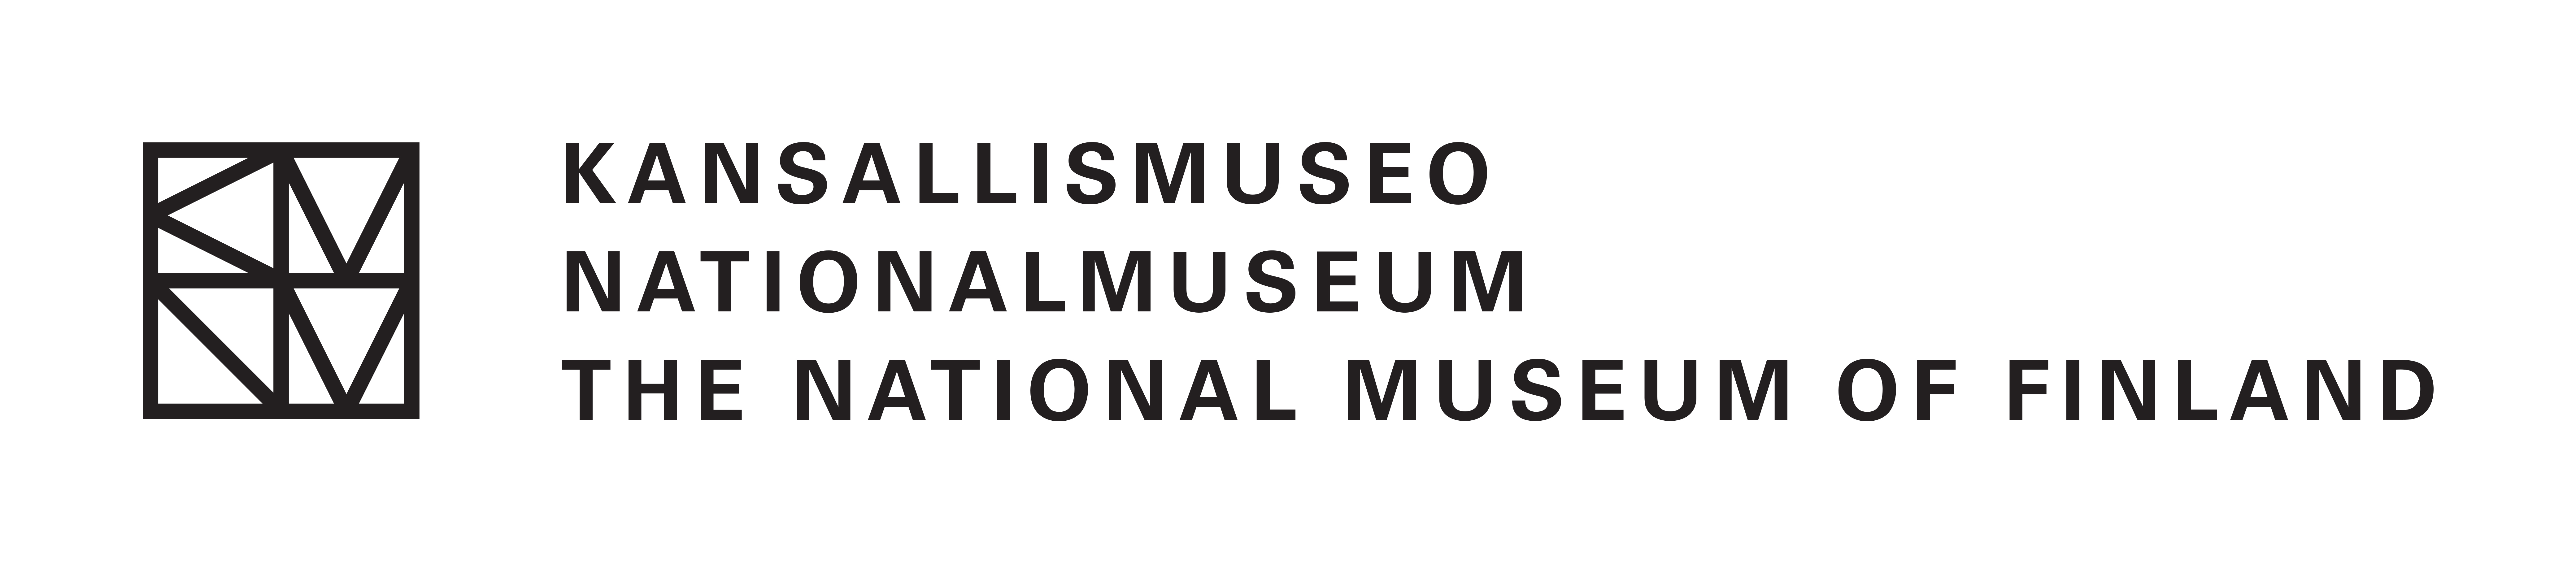 The National Museum of Finland